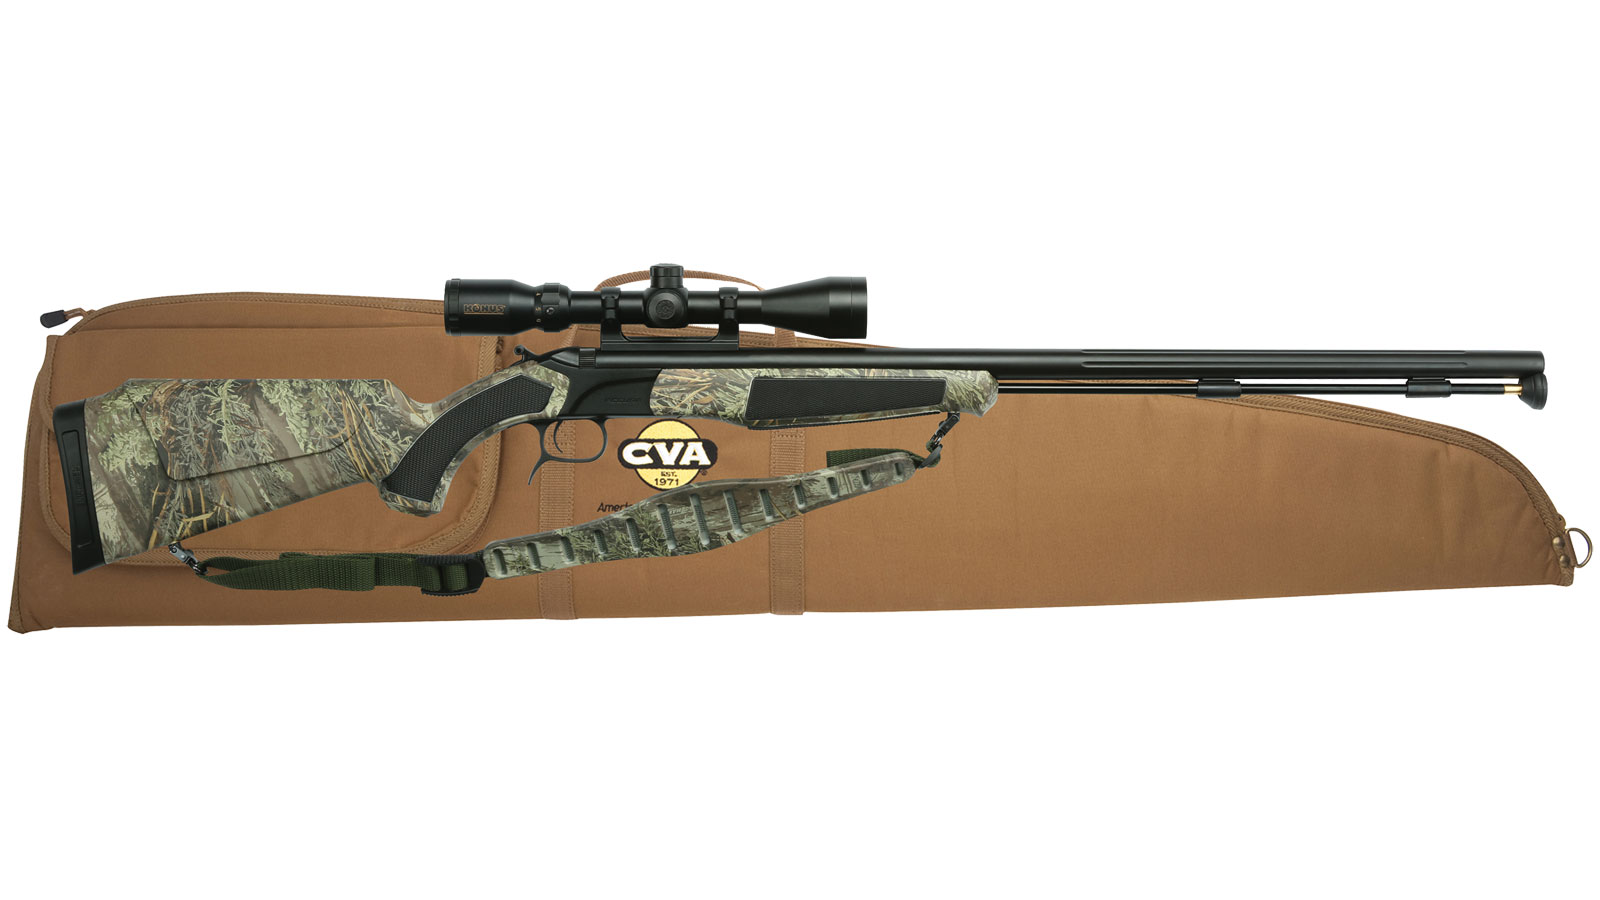 CVA Accura Plains Rifle Camouflage .50 Cal 28-inch 1rd with 3-10x44mm IR Scope